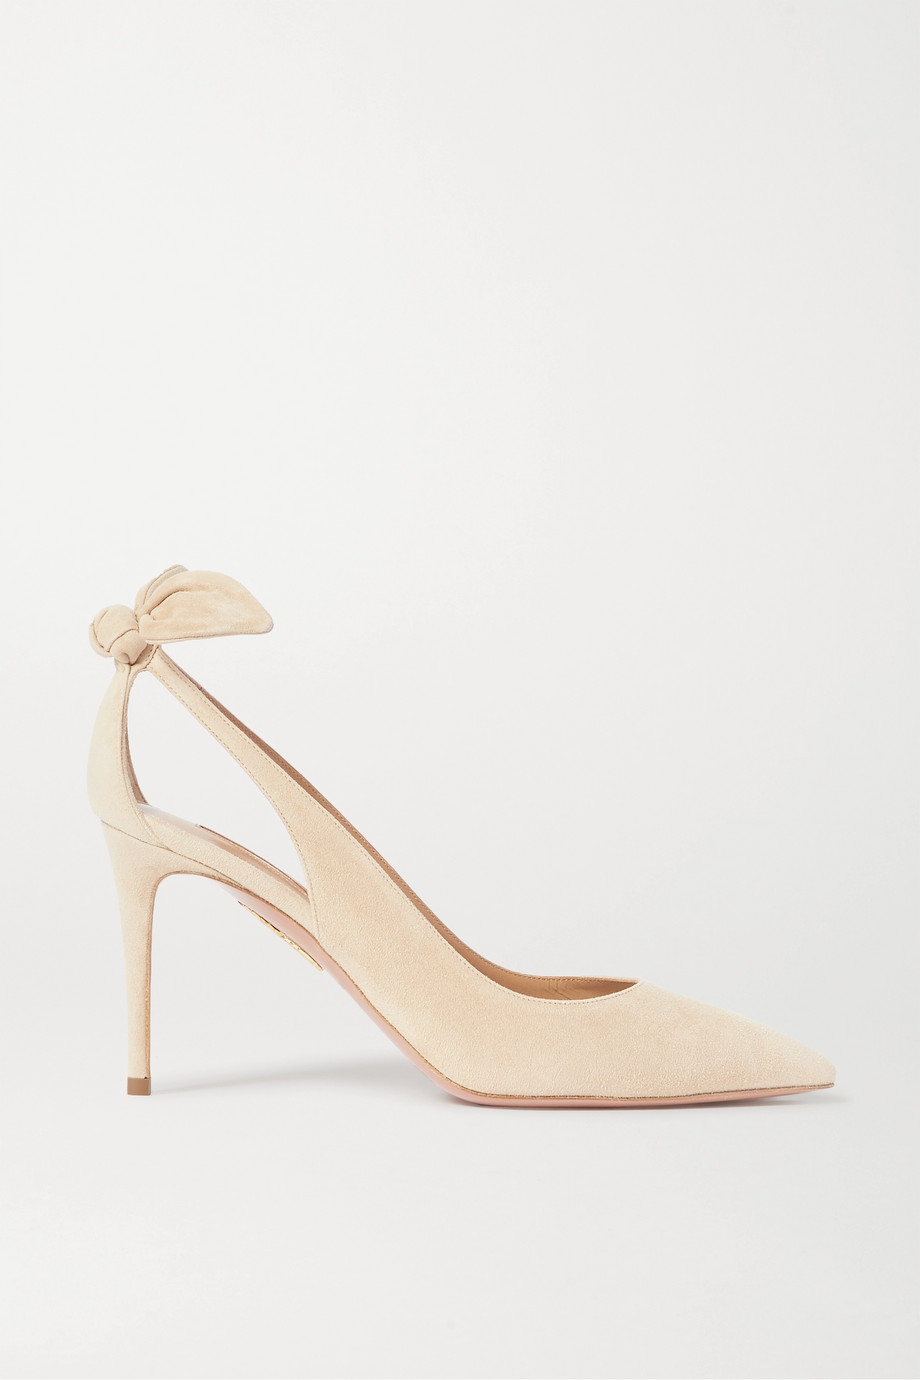 Aquazzura Bow Tie 85 suede pumps